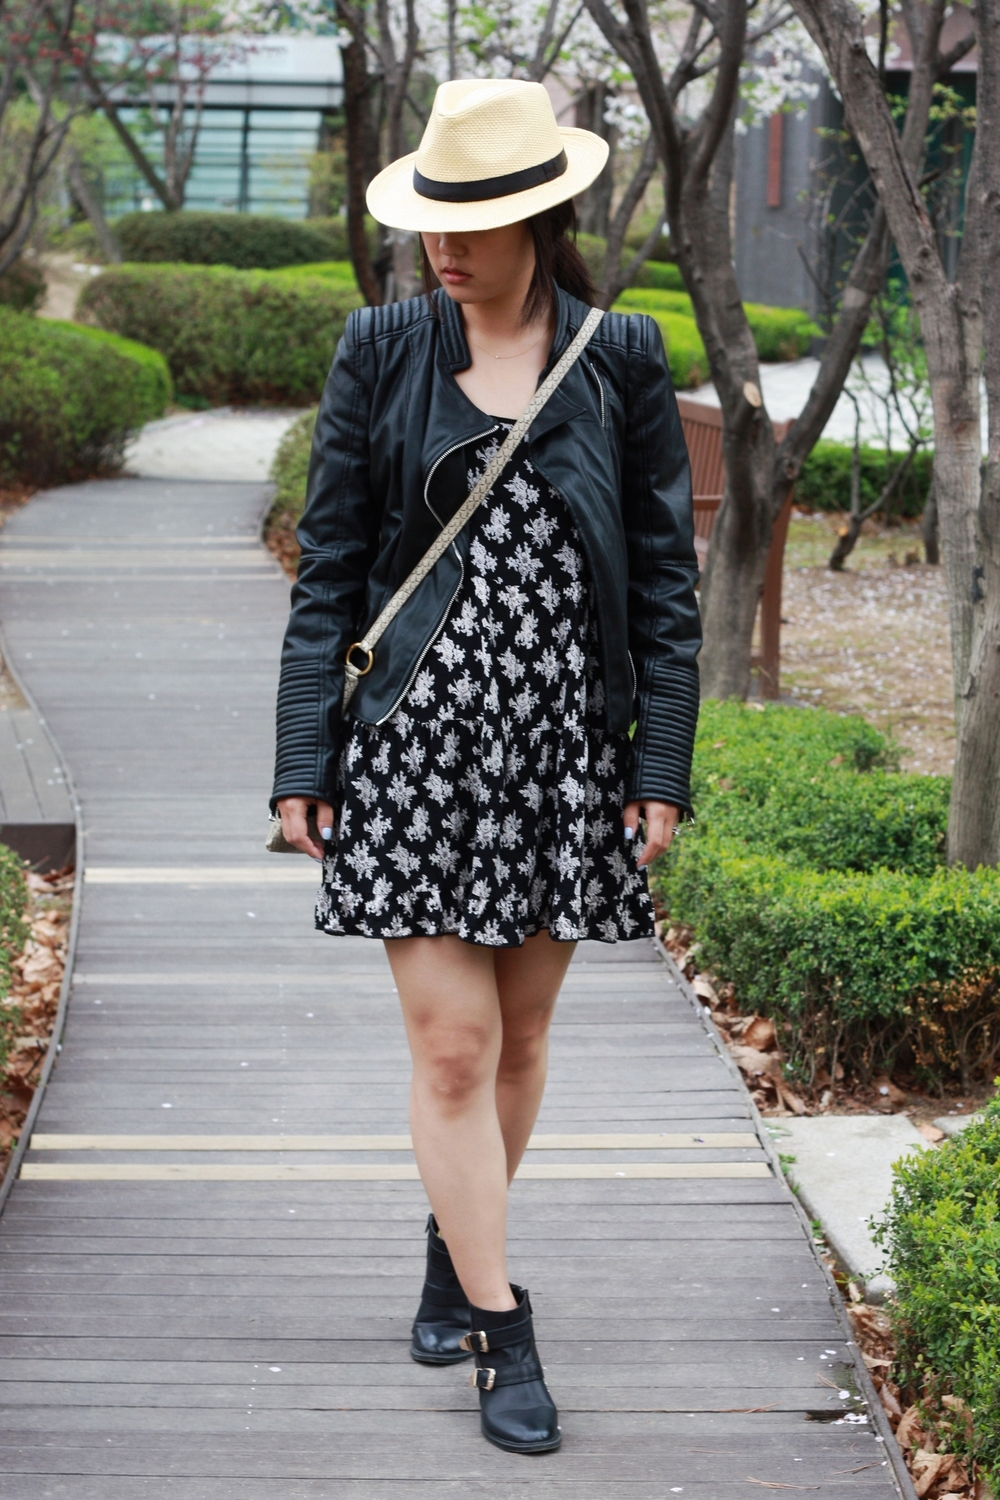 Jacket: Zara, Dress: TJ Maxx, Booties: DSW, Bag: Marc by Marc Jacobs, Hat: Flea Market